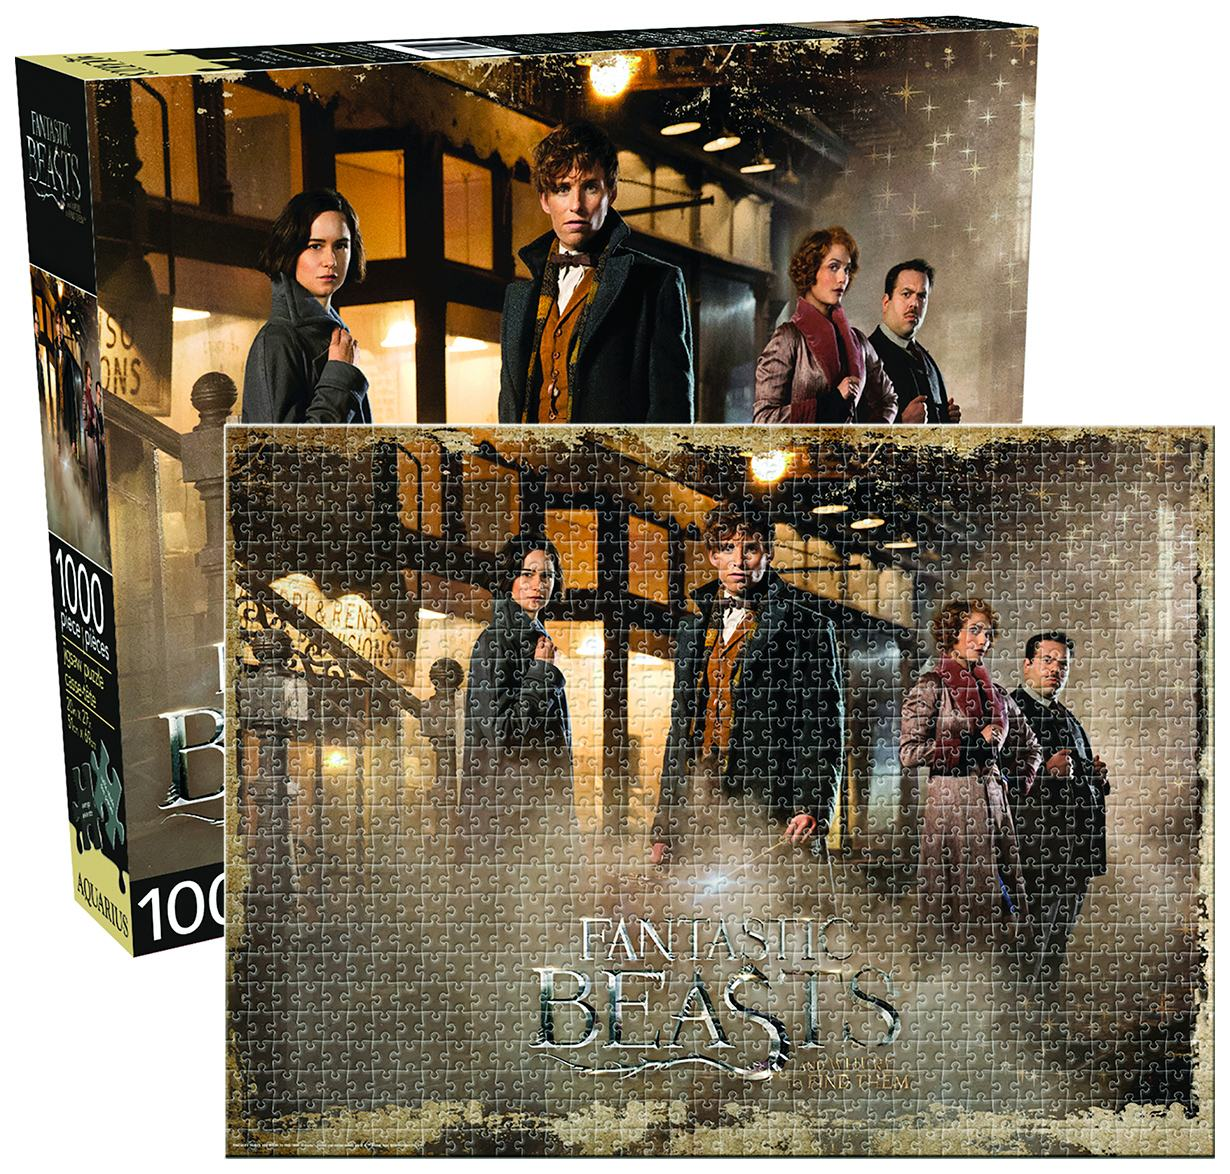 quebra-cabeca-fantastic-beasts-and-where-to-find-them-1000-piece-puzzle-02